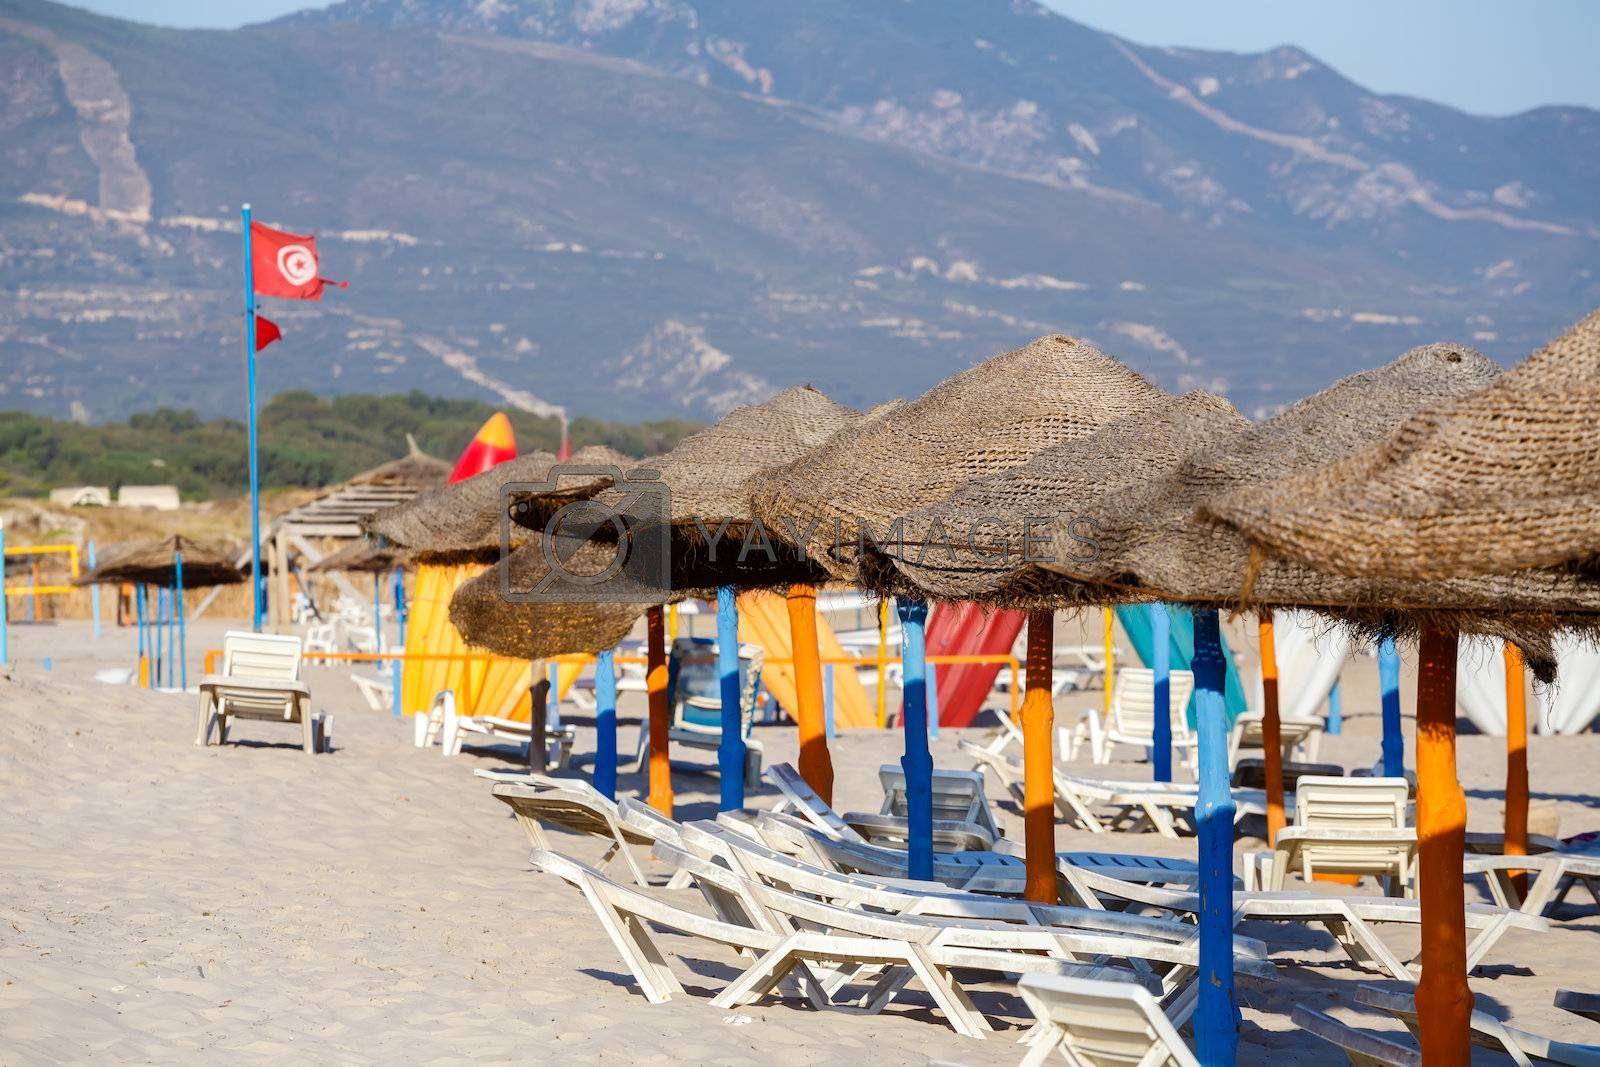 Royalty free image of tunisian beach in morning without people by artush